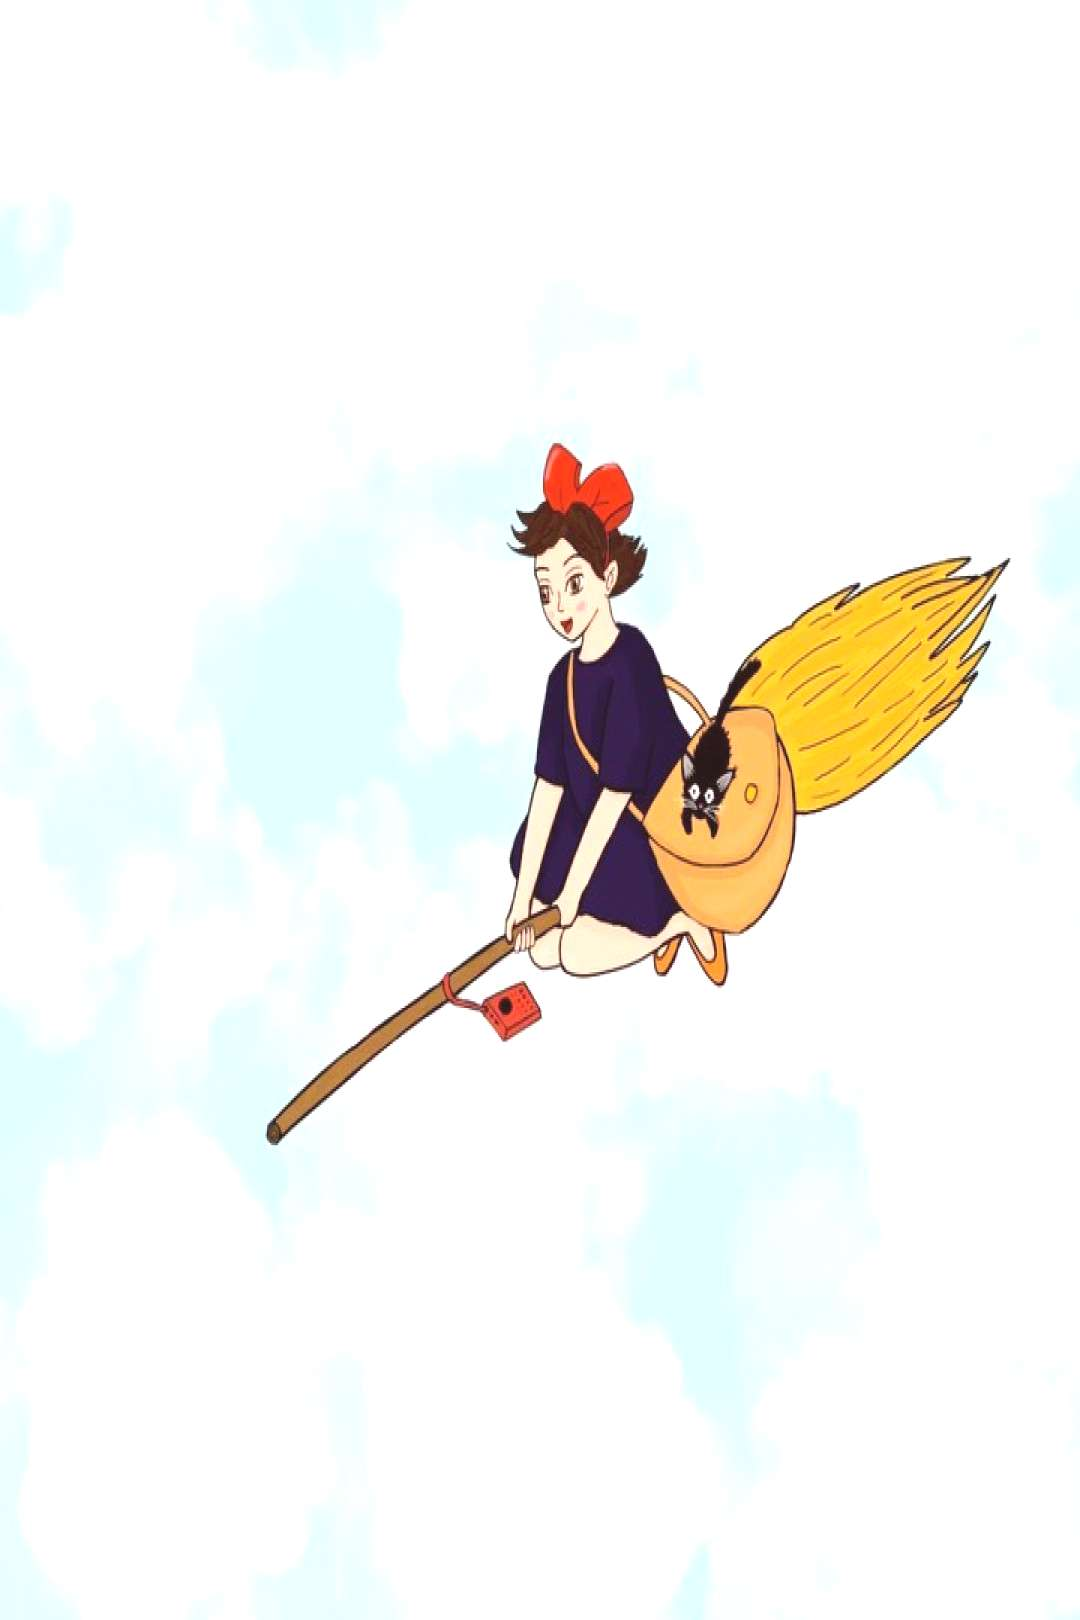 kikis delivery service️ #kikisdeliveryservice #movie #witch #b